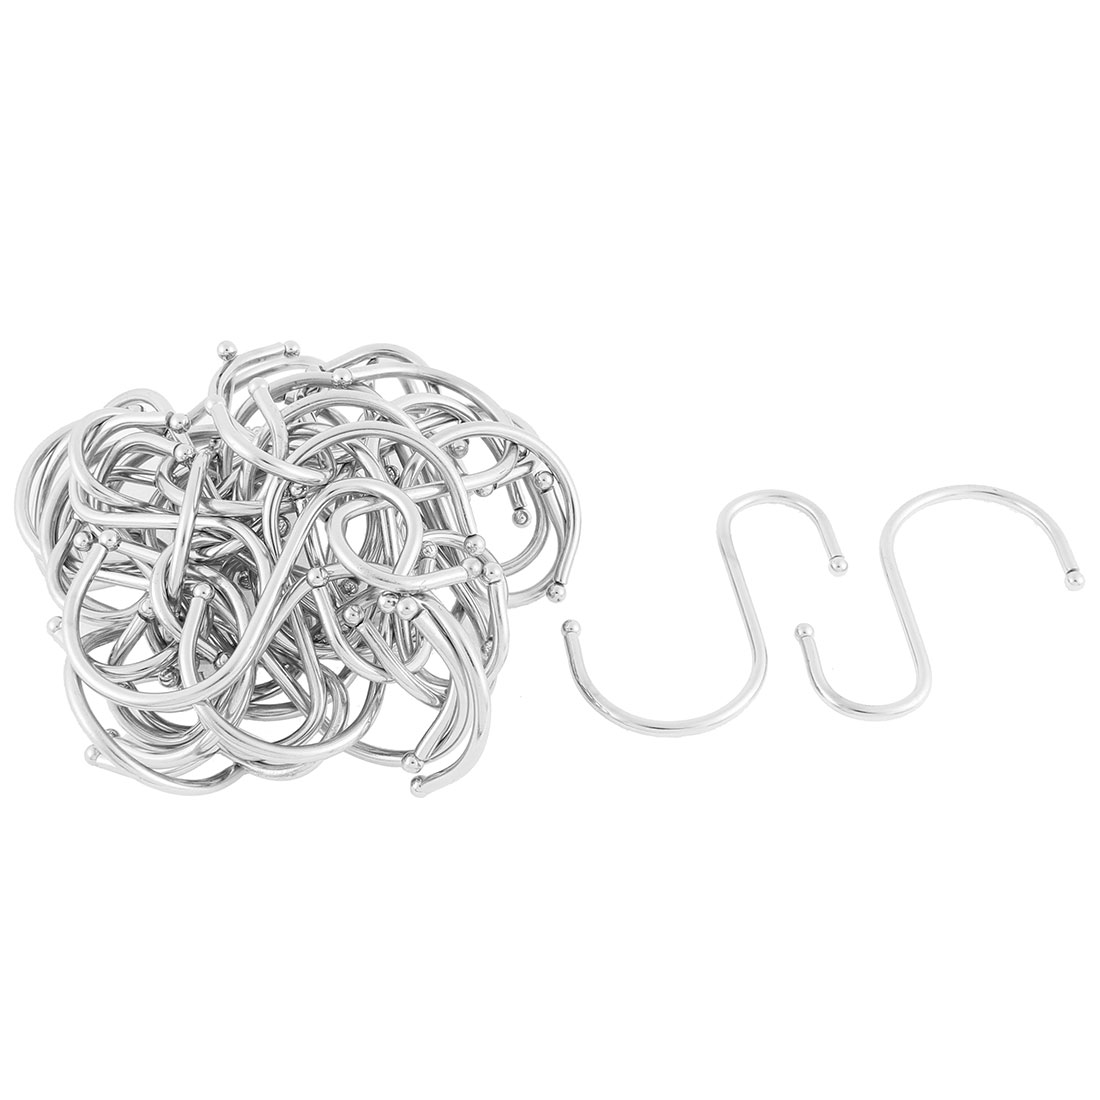 Bathroom Basket Bag Clothes S Shaped Hanging Hooks Hangers Holder 40pcs